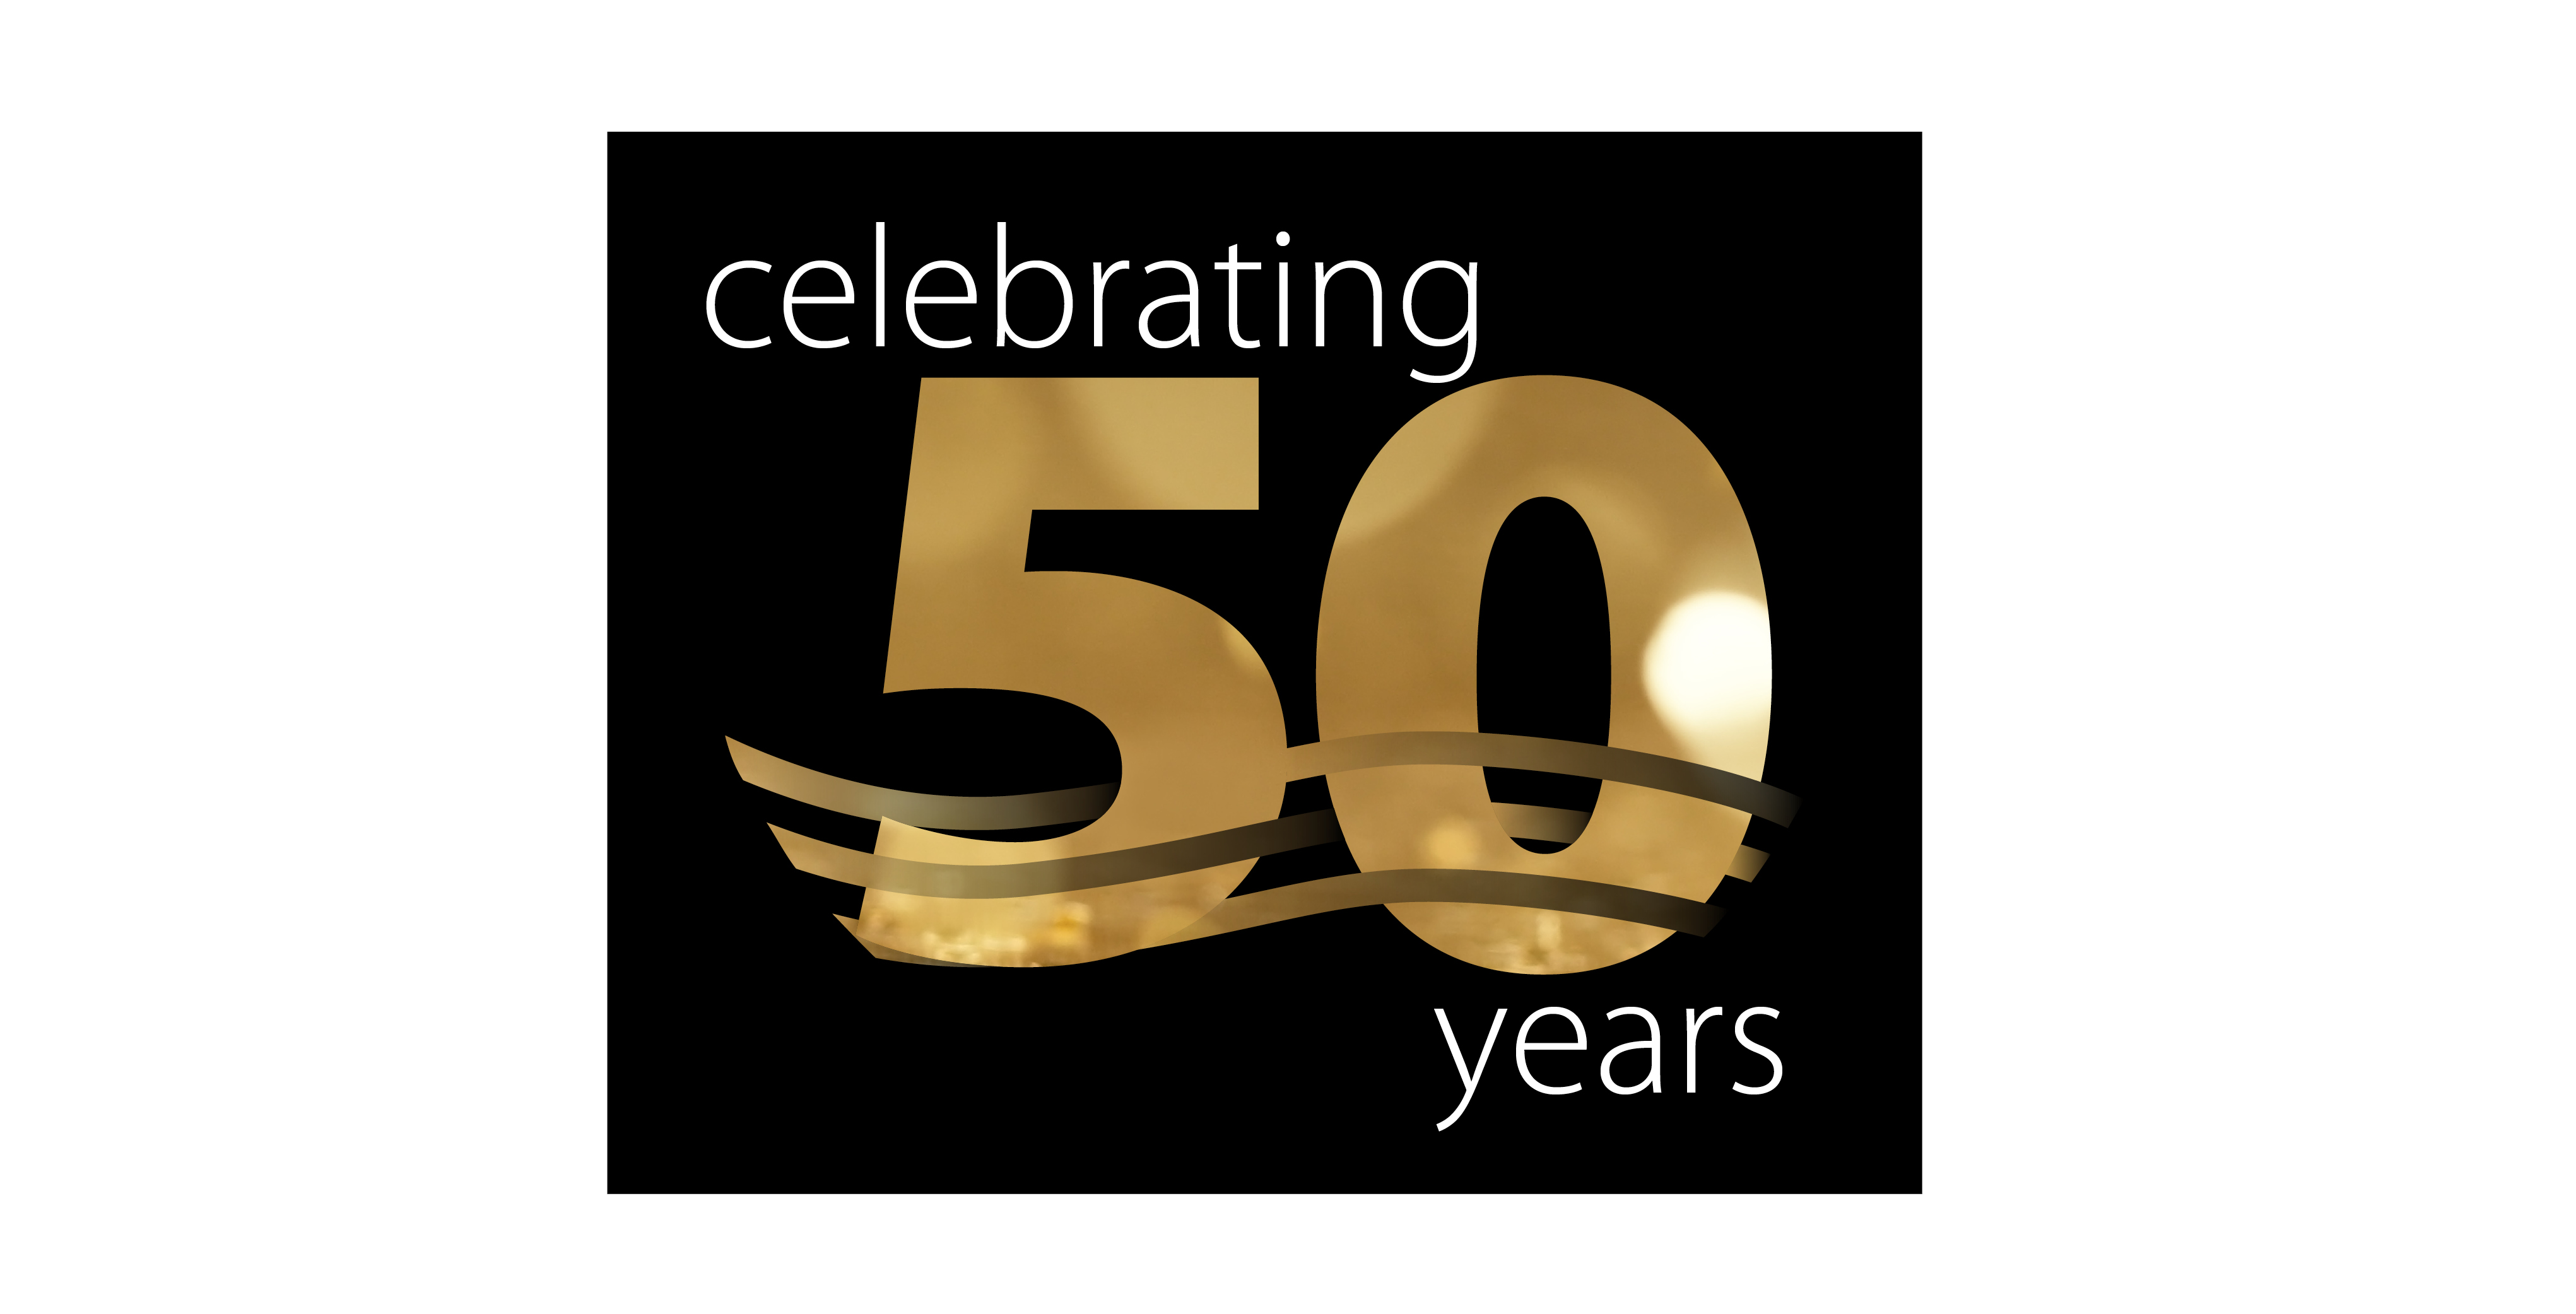 AMT - Celebrating 50 years